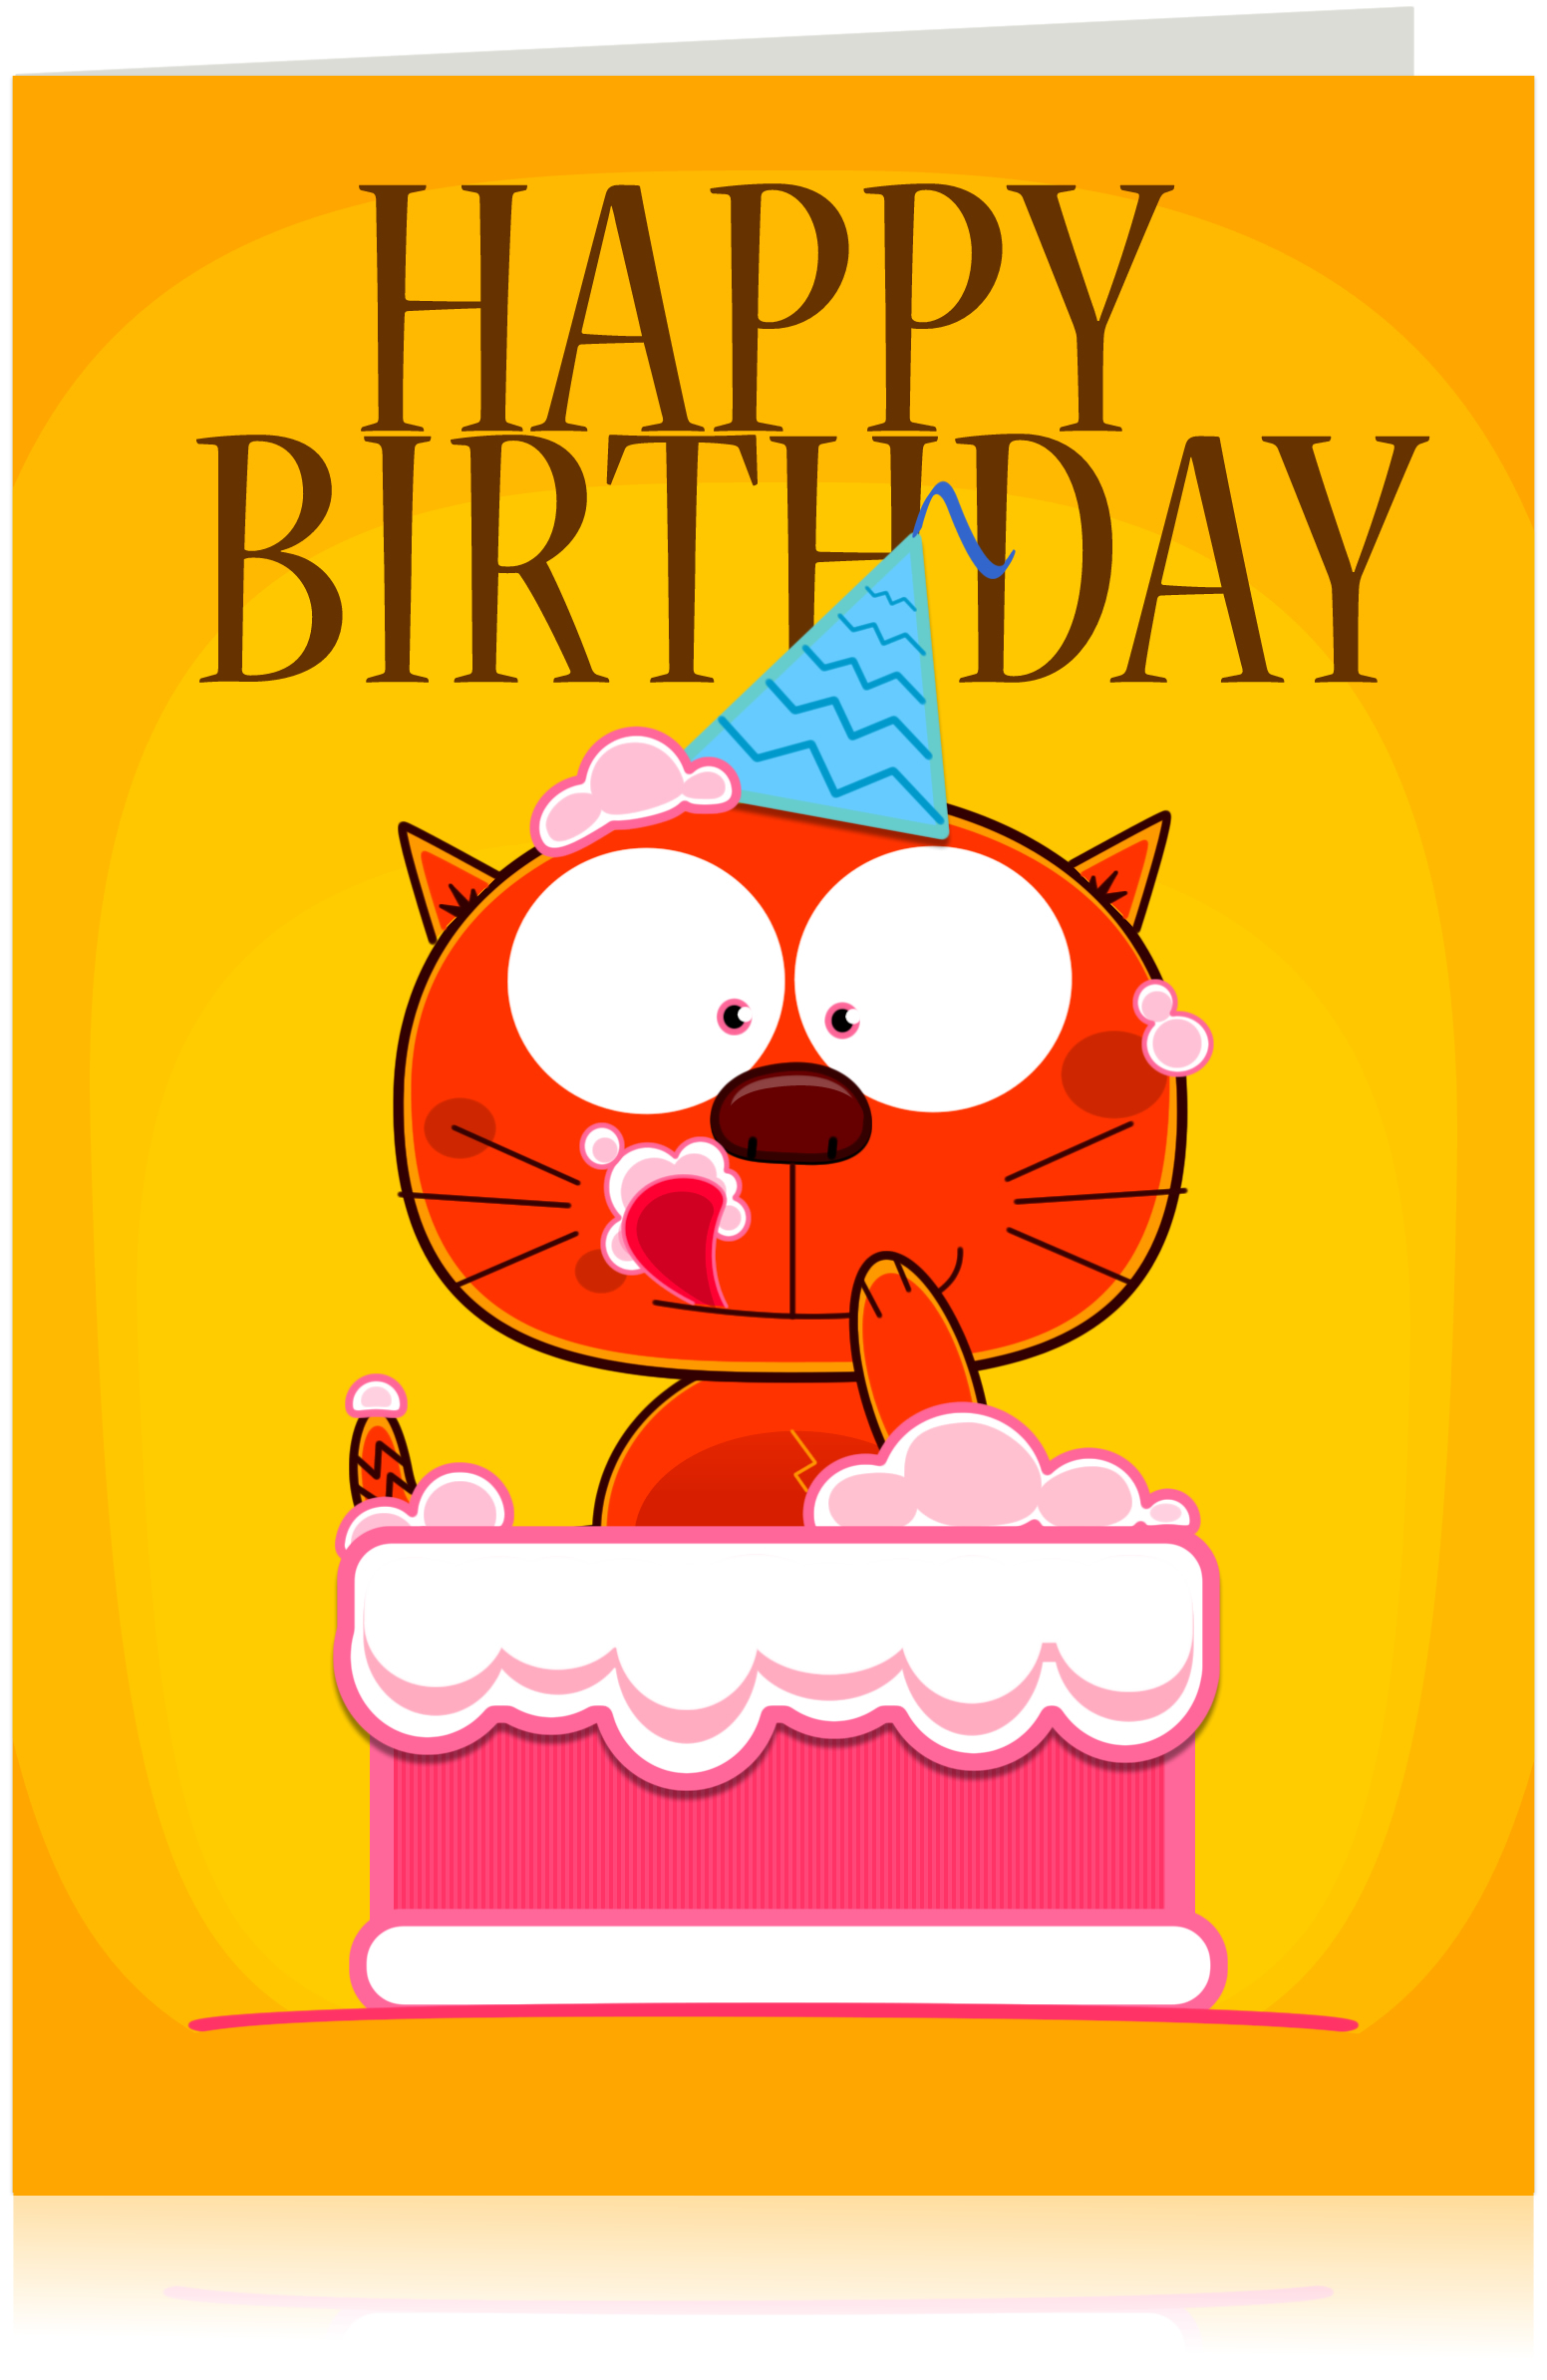 Saniqk design studio blog happy birthday greeting card preview m4hsunfo